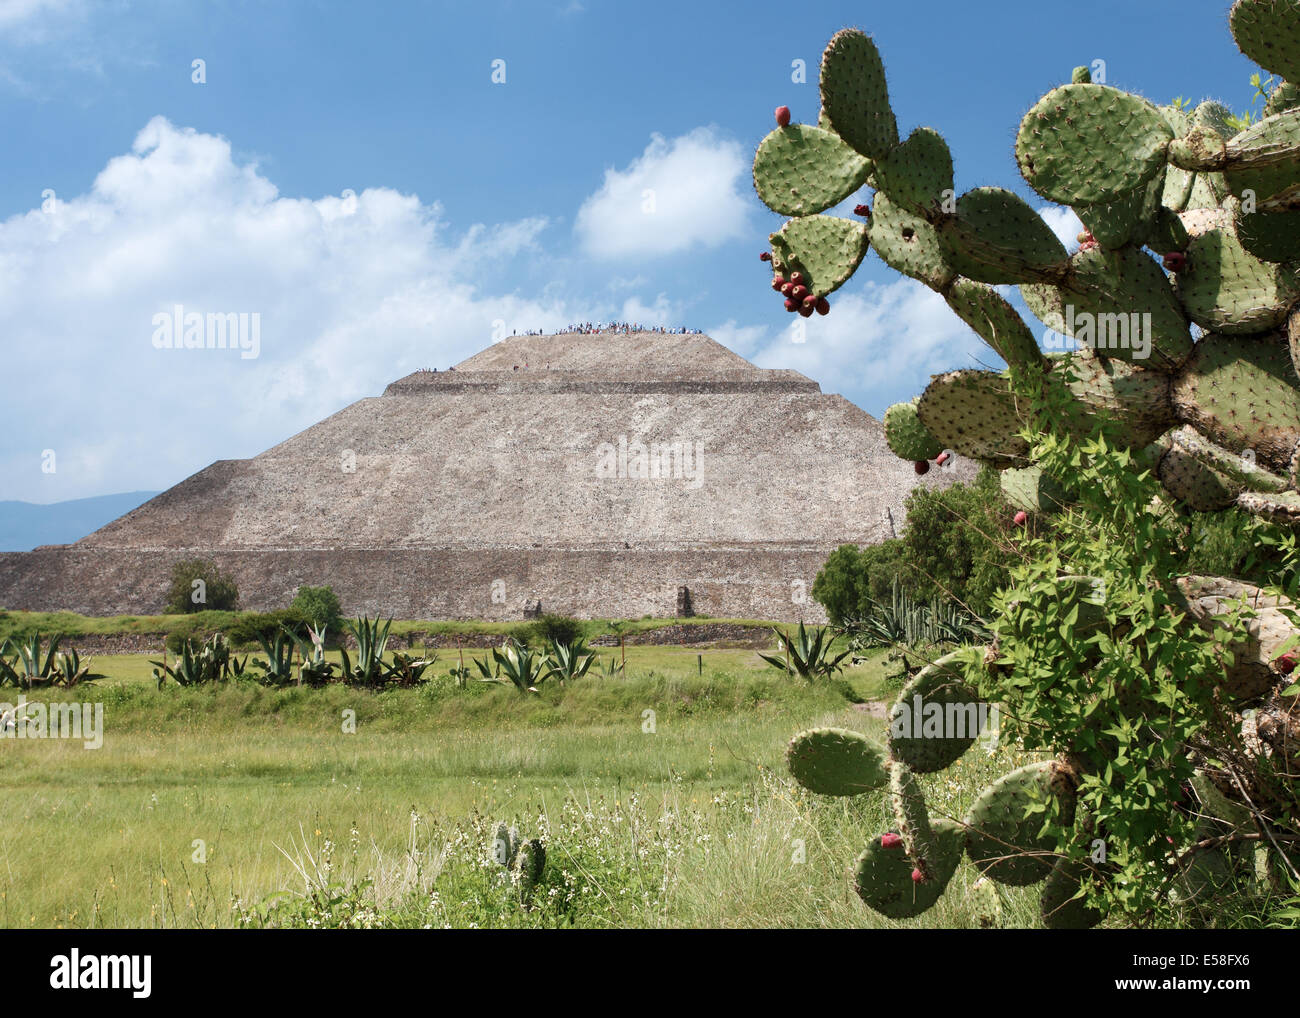 Pyramid of the Sun and Prickly Pear Cactus, Teotihuacan, Mexico - Stock Image